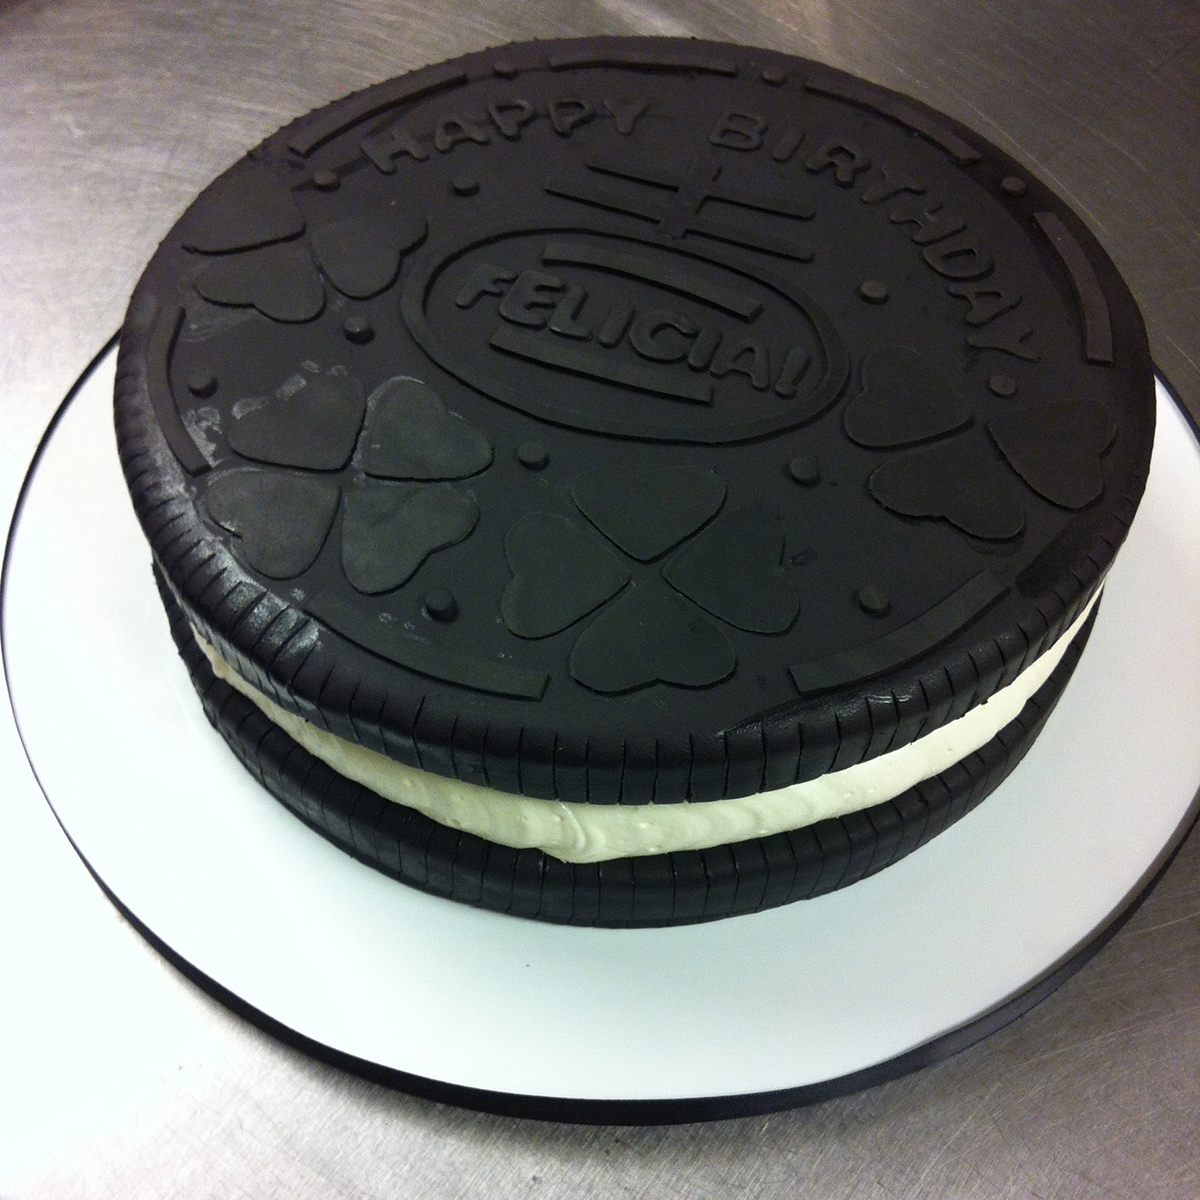 With Our Extensive Menu Offerings We Are A One Stop Shop For Cakes Chocolates And Desserts